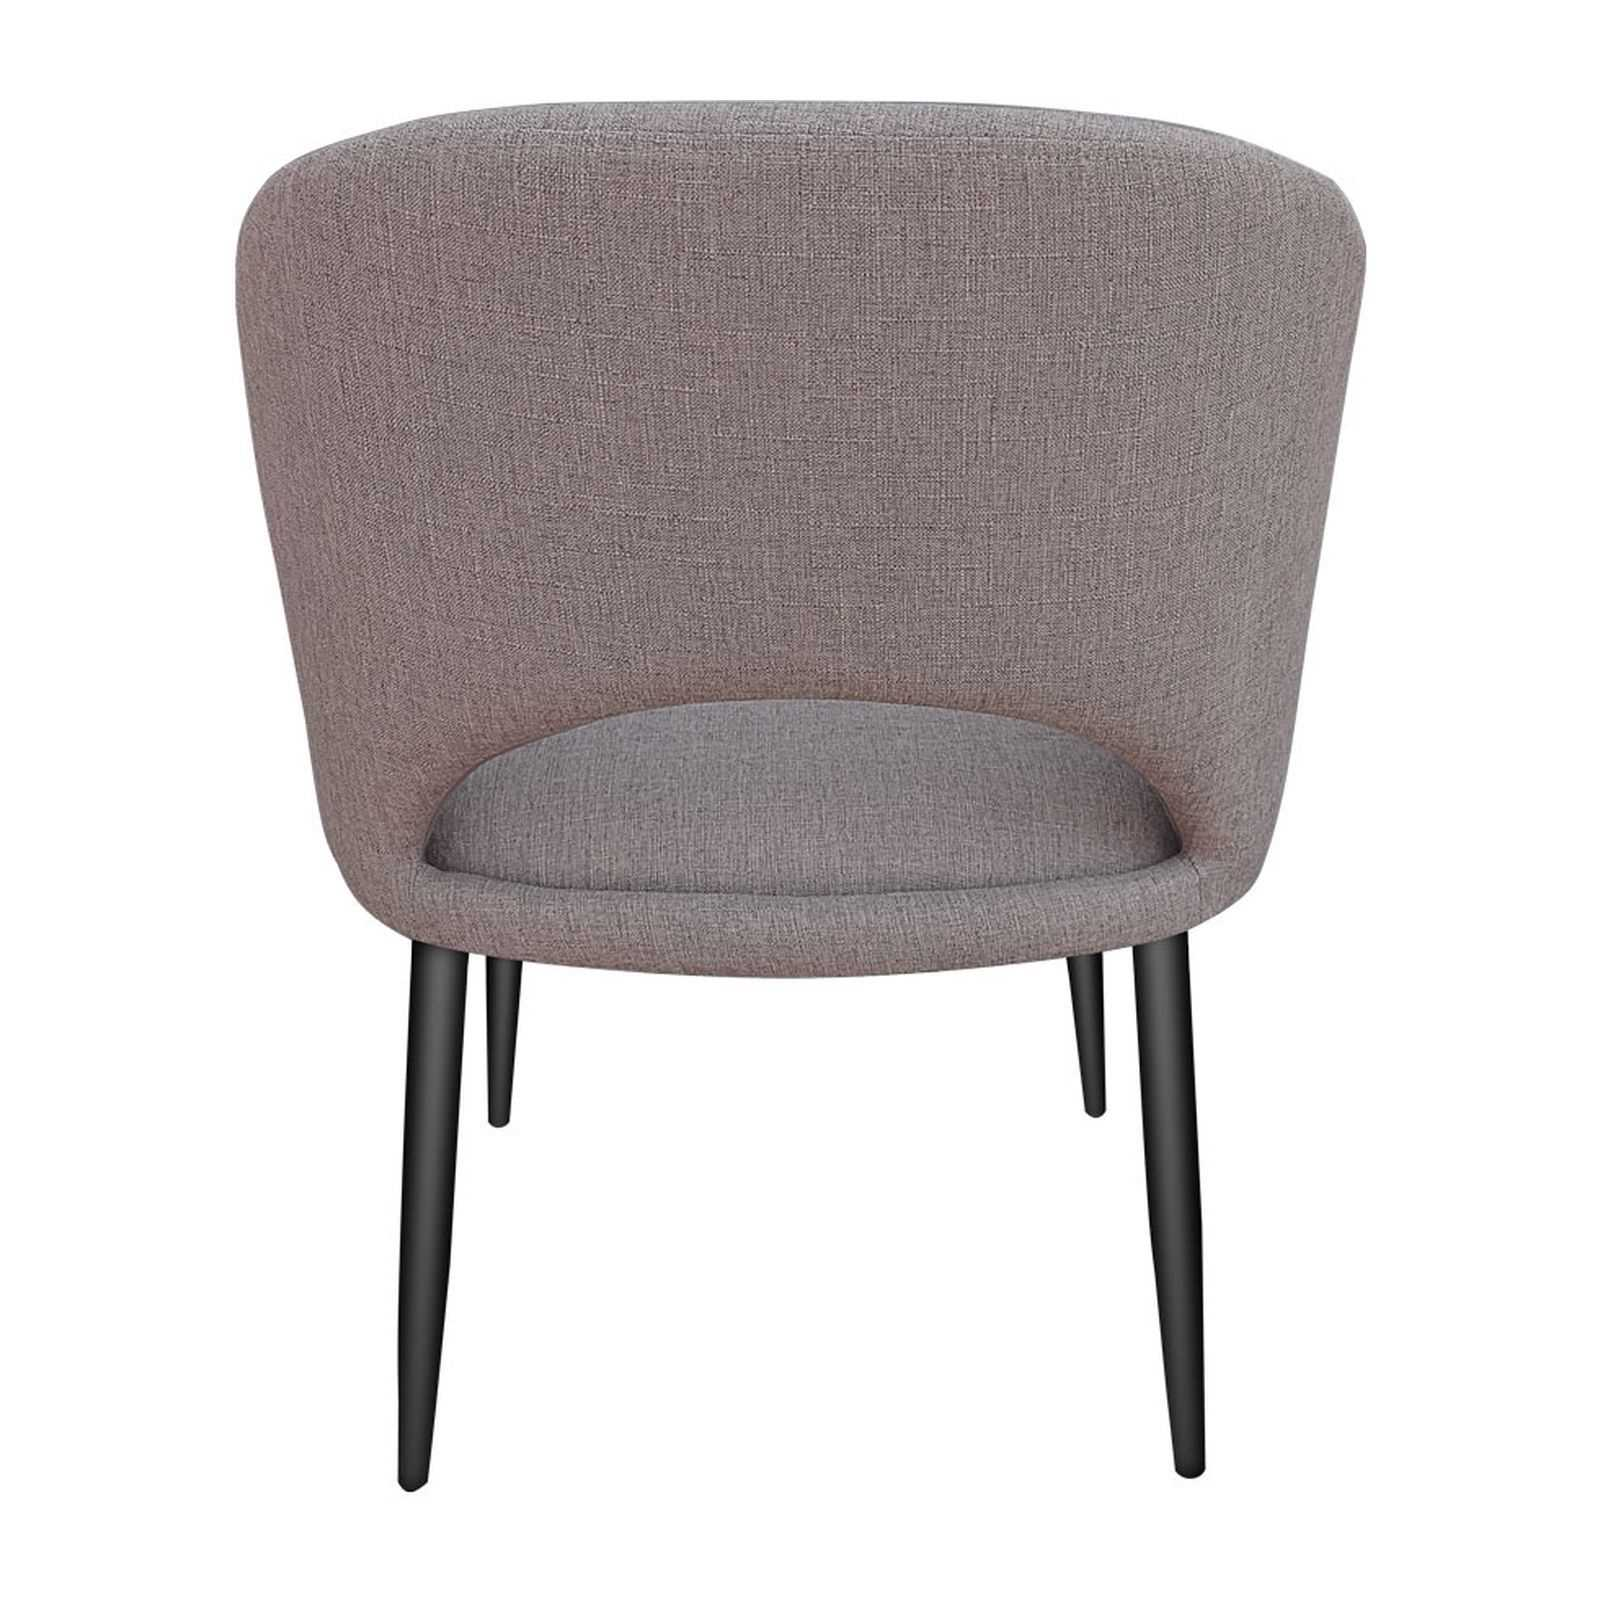 Potiron Fauteuils Potiron Fauteuil Groovy Taupe Brandalley